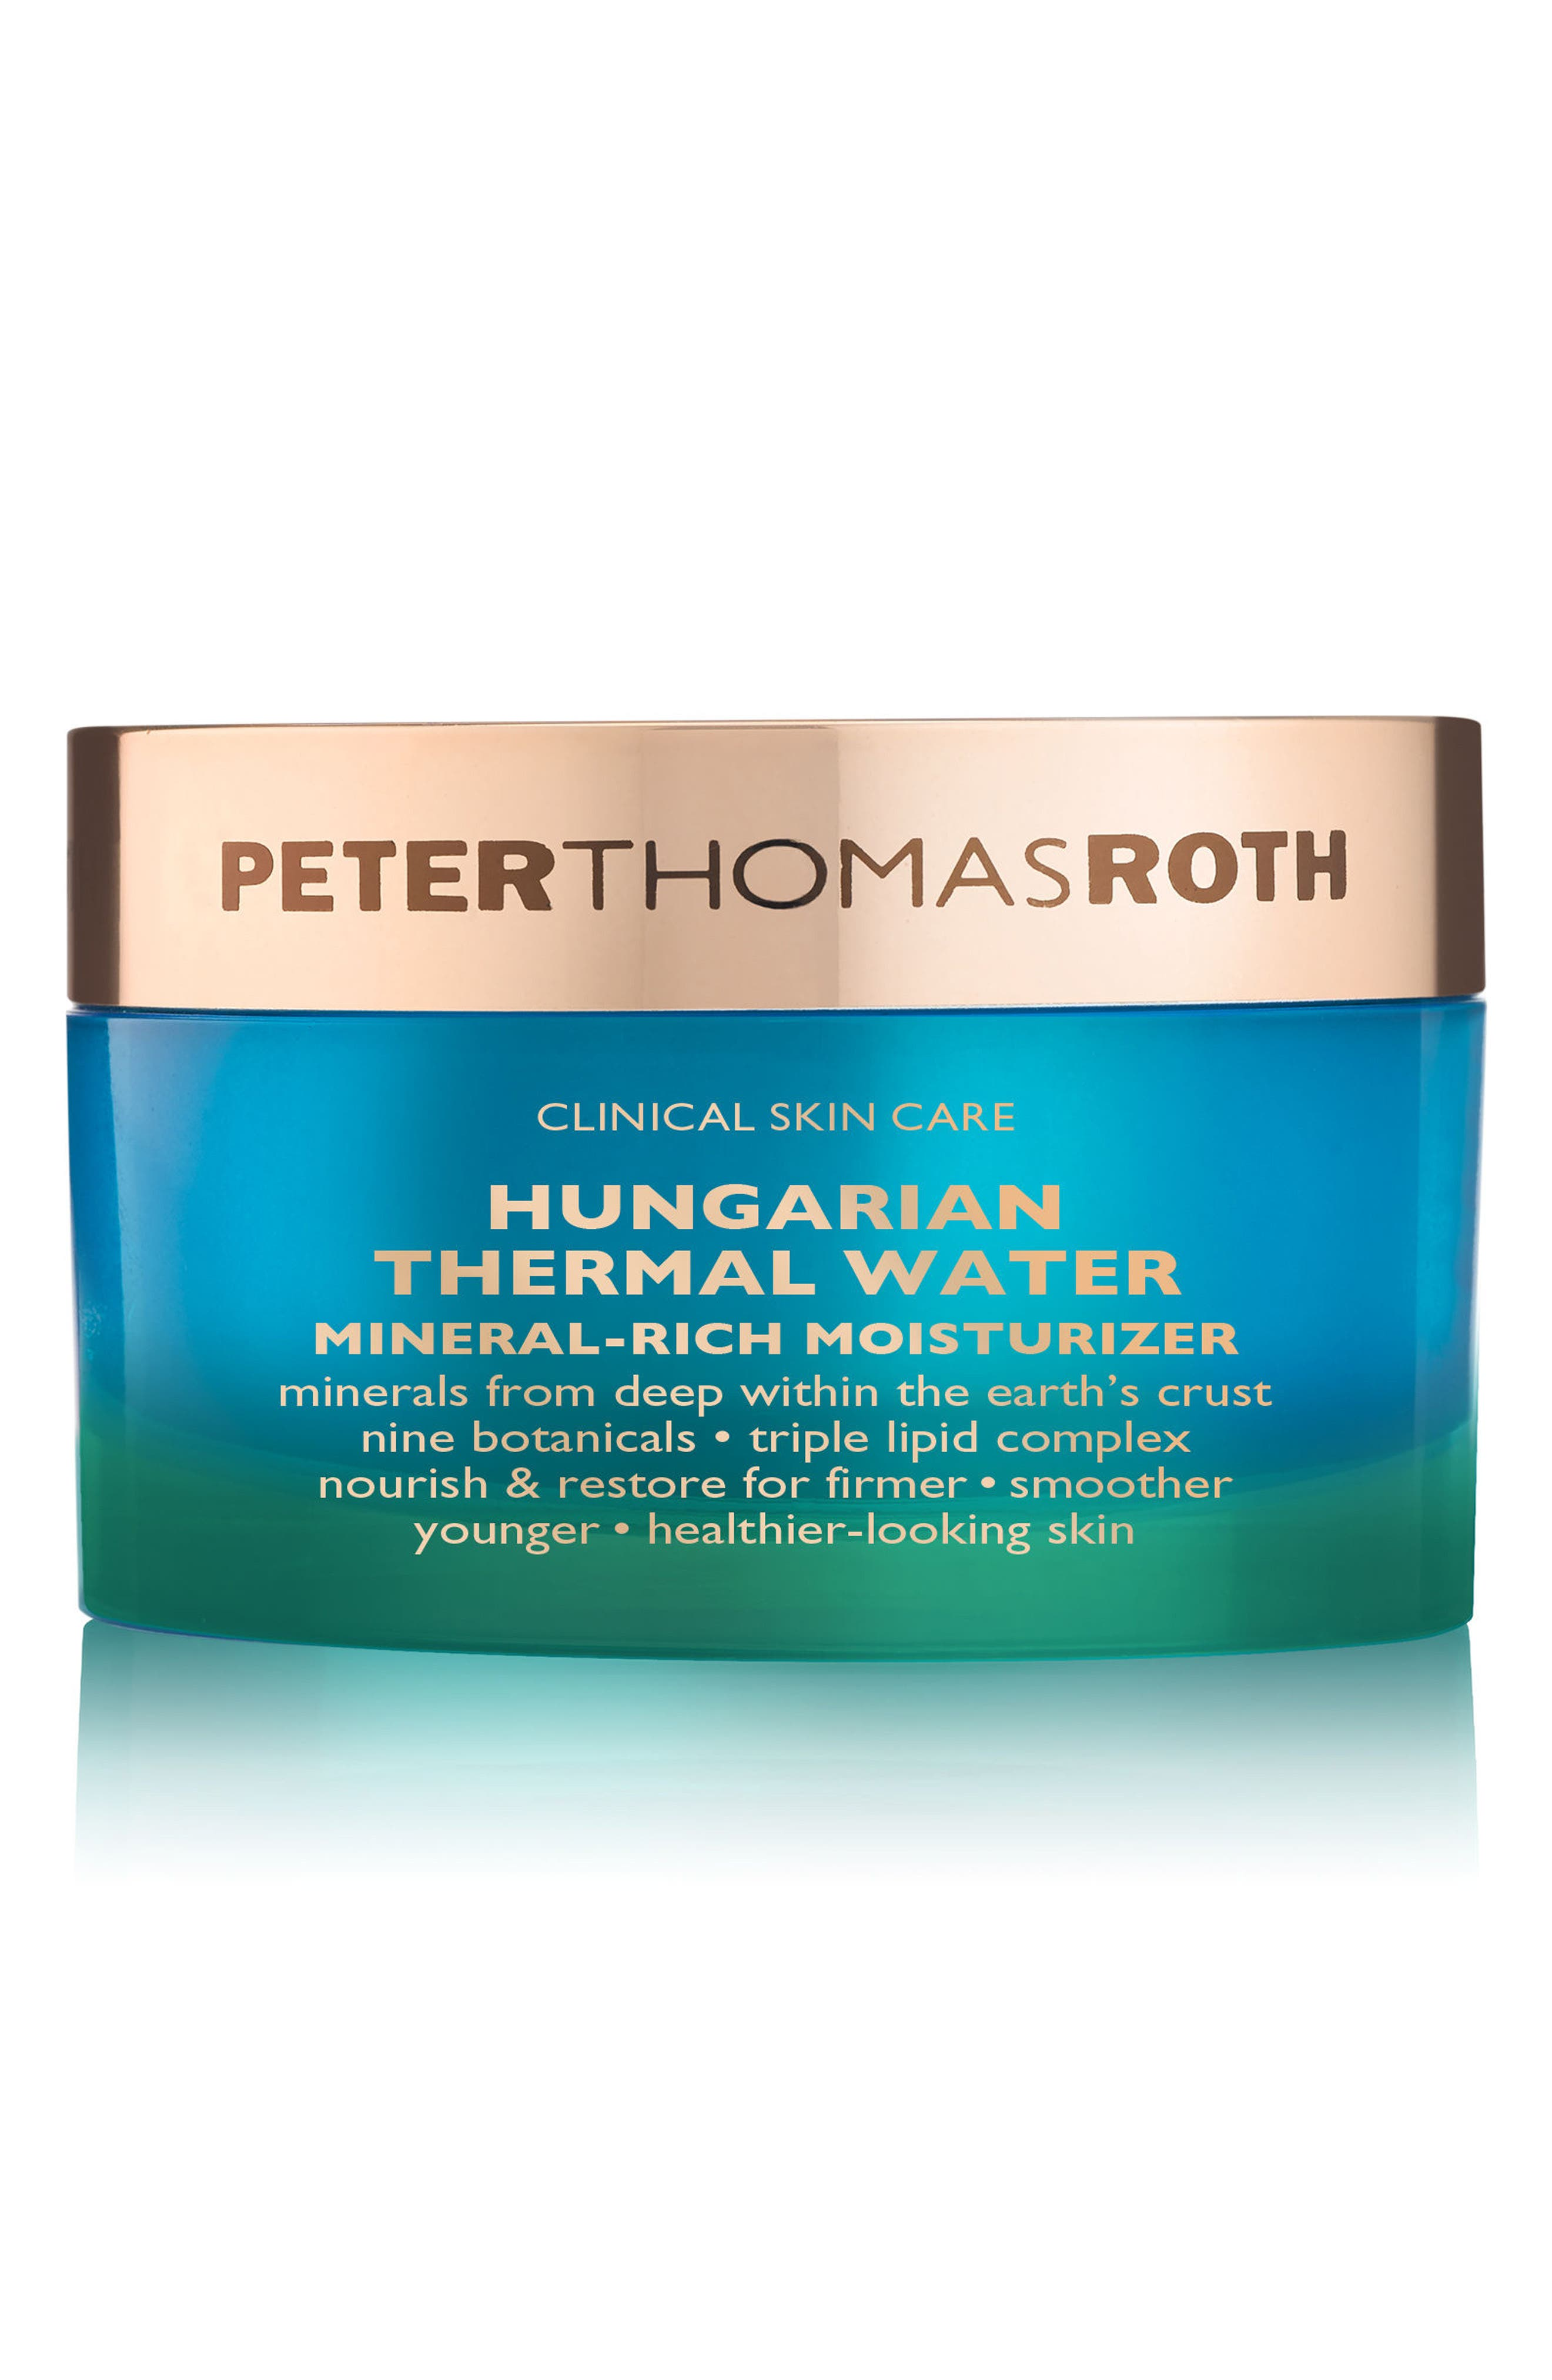 Hungarian Thermal Water Mineral-Rich Moisturizer,                             Main thumbnail 1, color,                             No Color